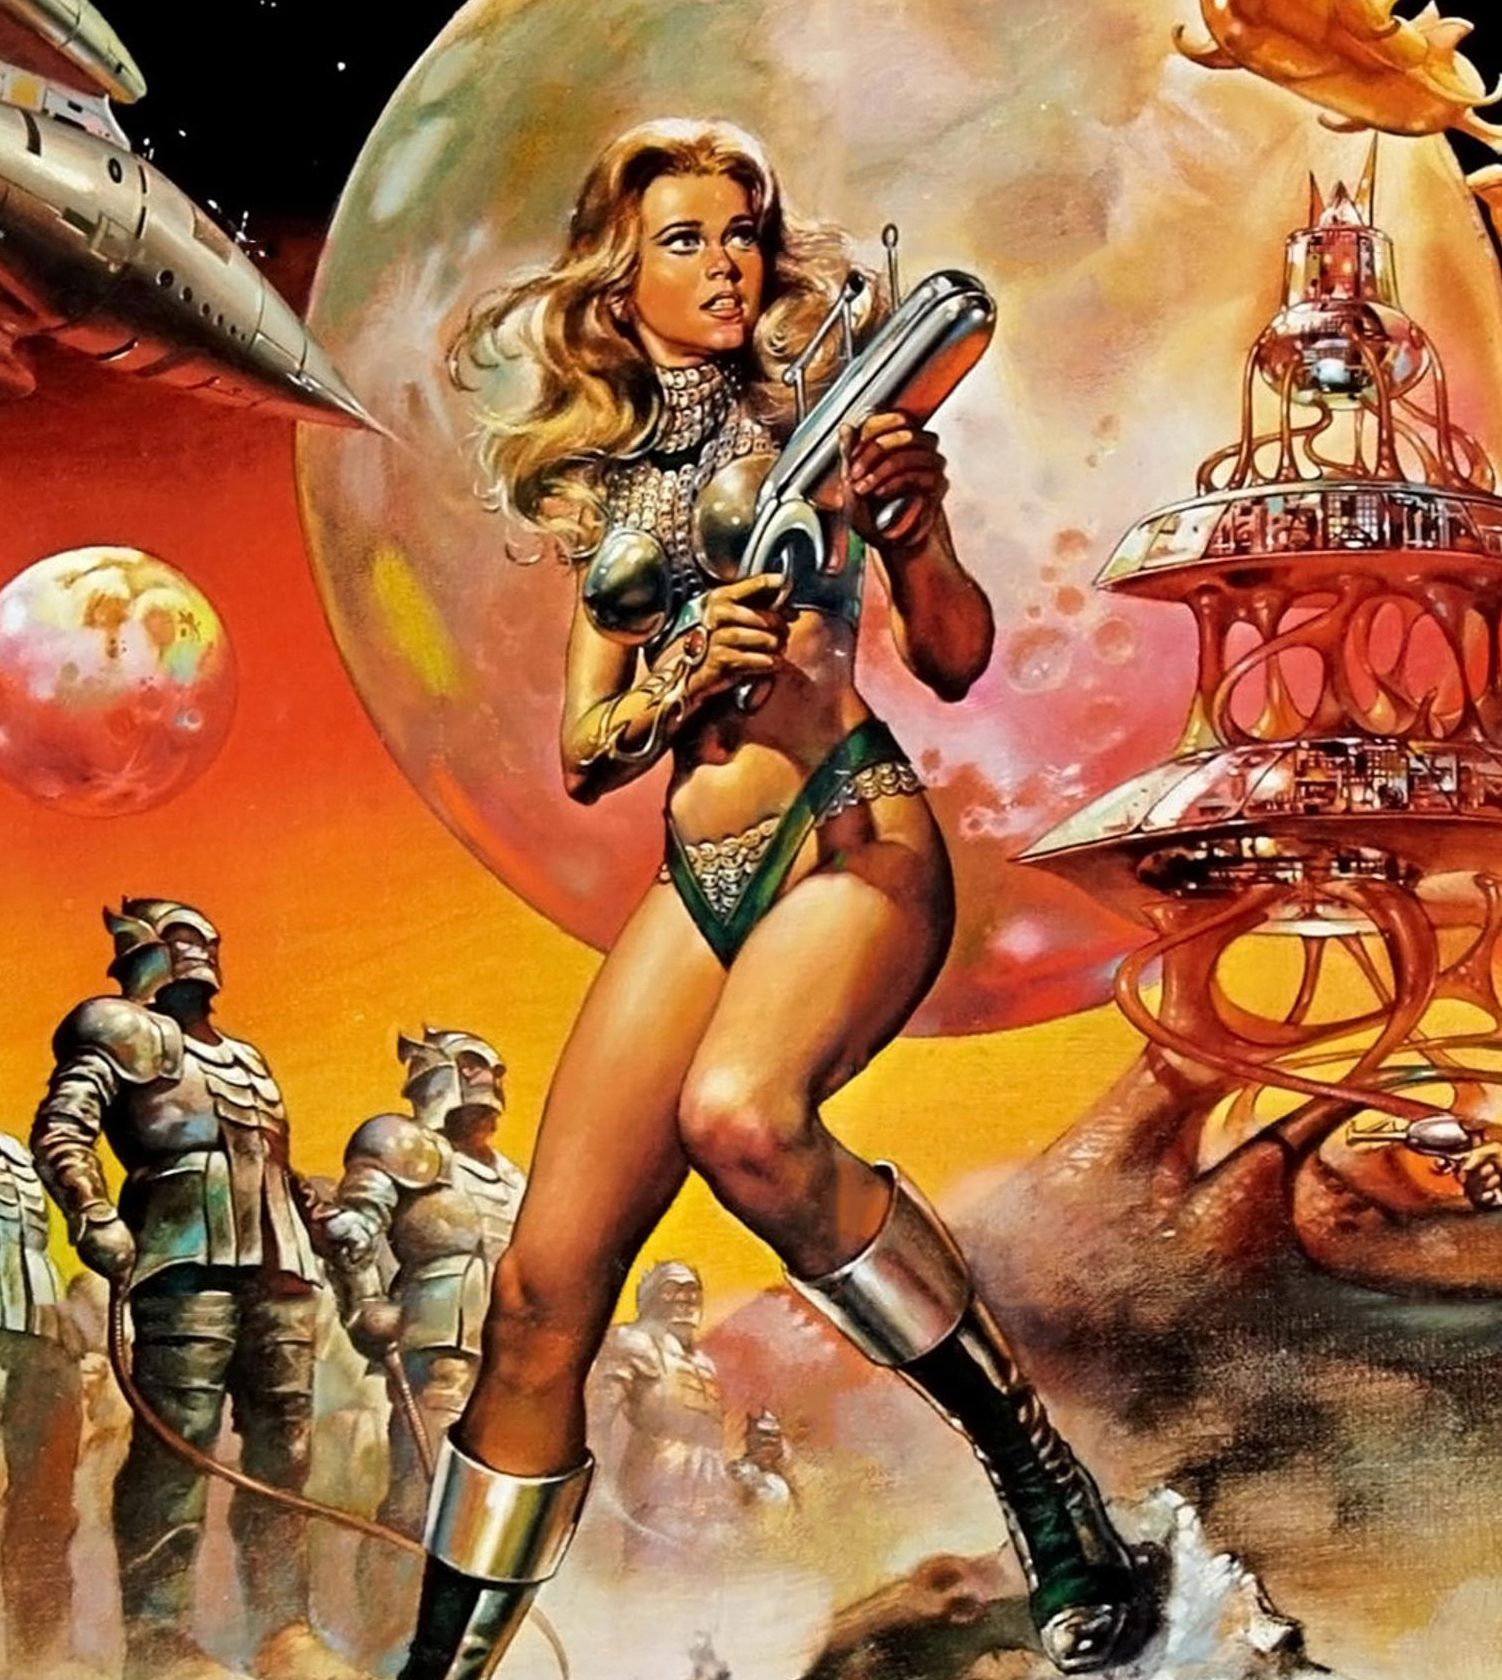 barbarella phone wallpaper e1581928715446 20 Superhero Movies That Were Made For Adults Only